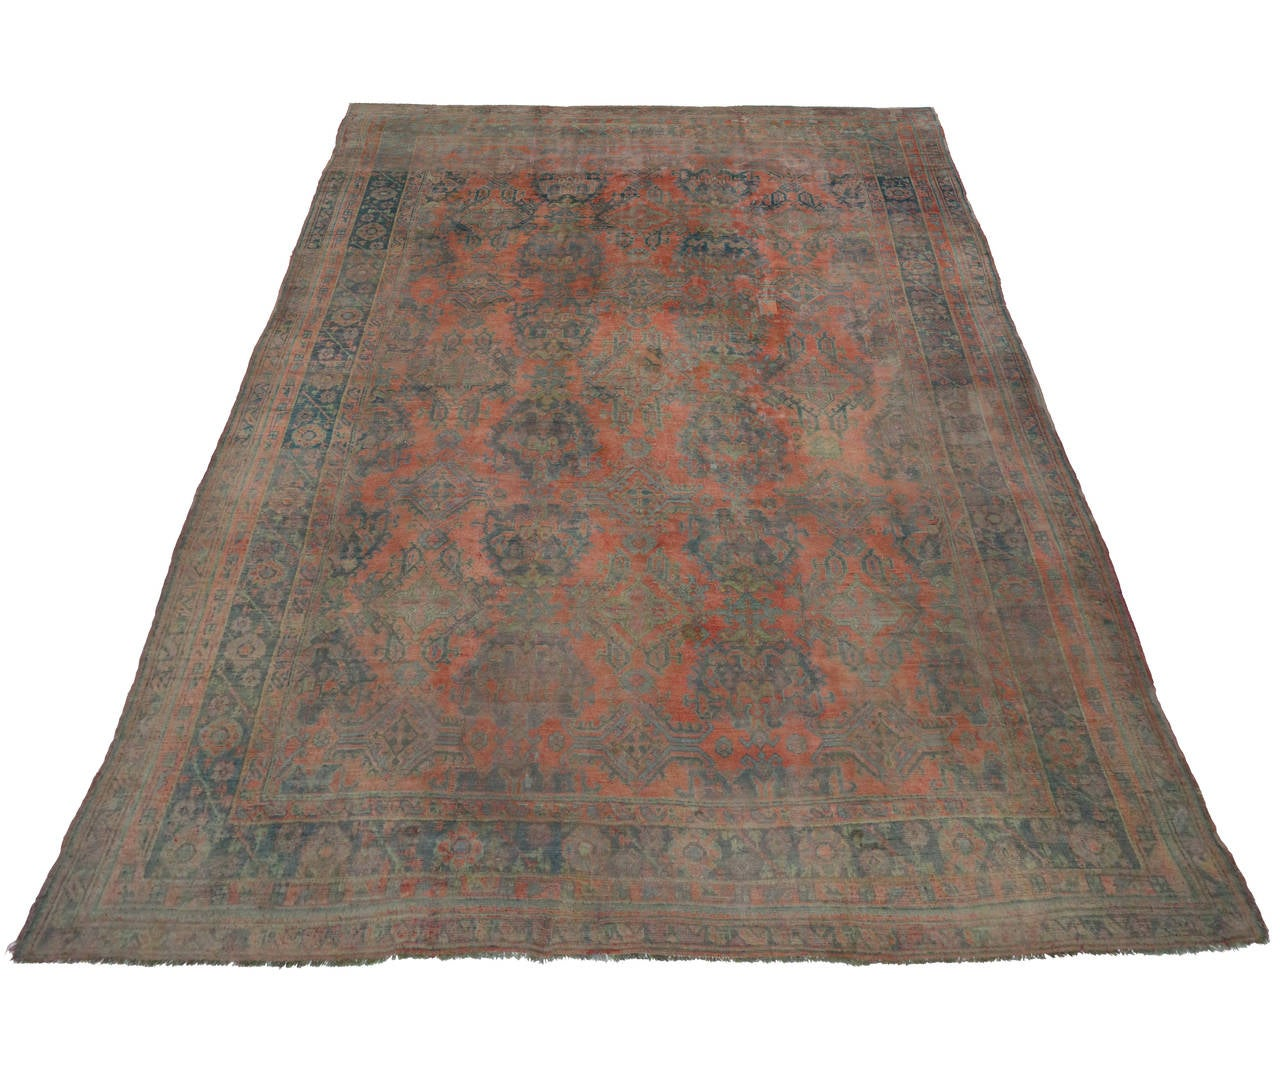 Antique Turkish Oushak Gallery Rug with Modern Design in Muted Colors 5